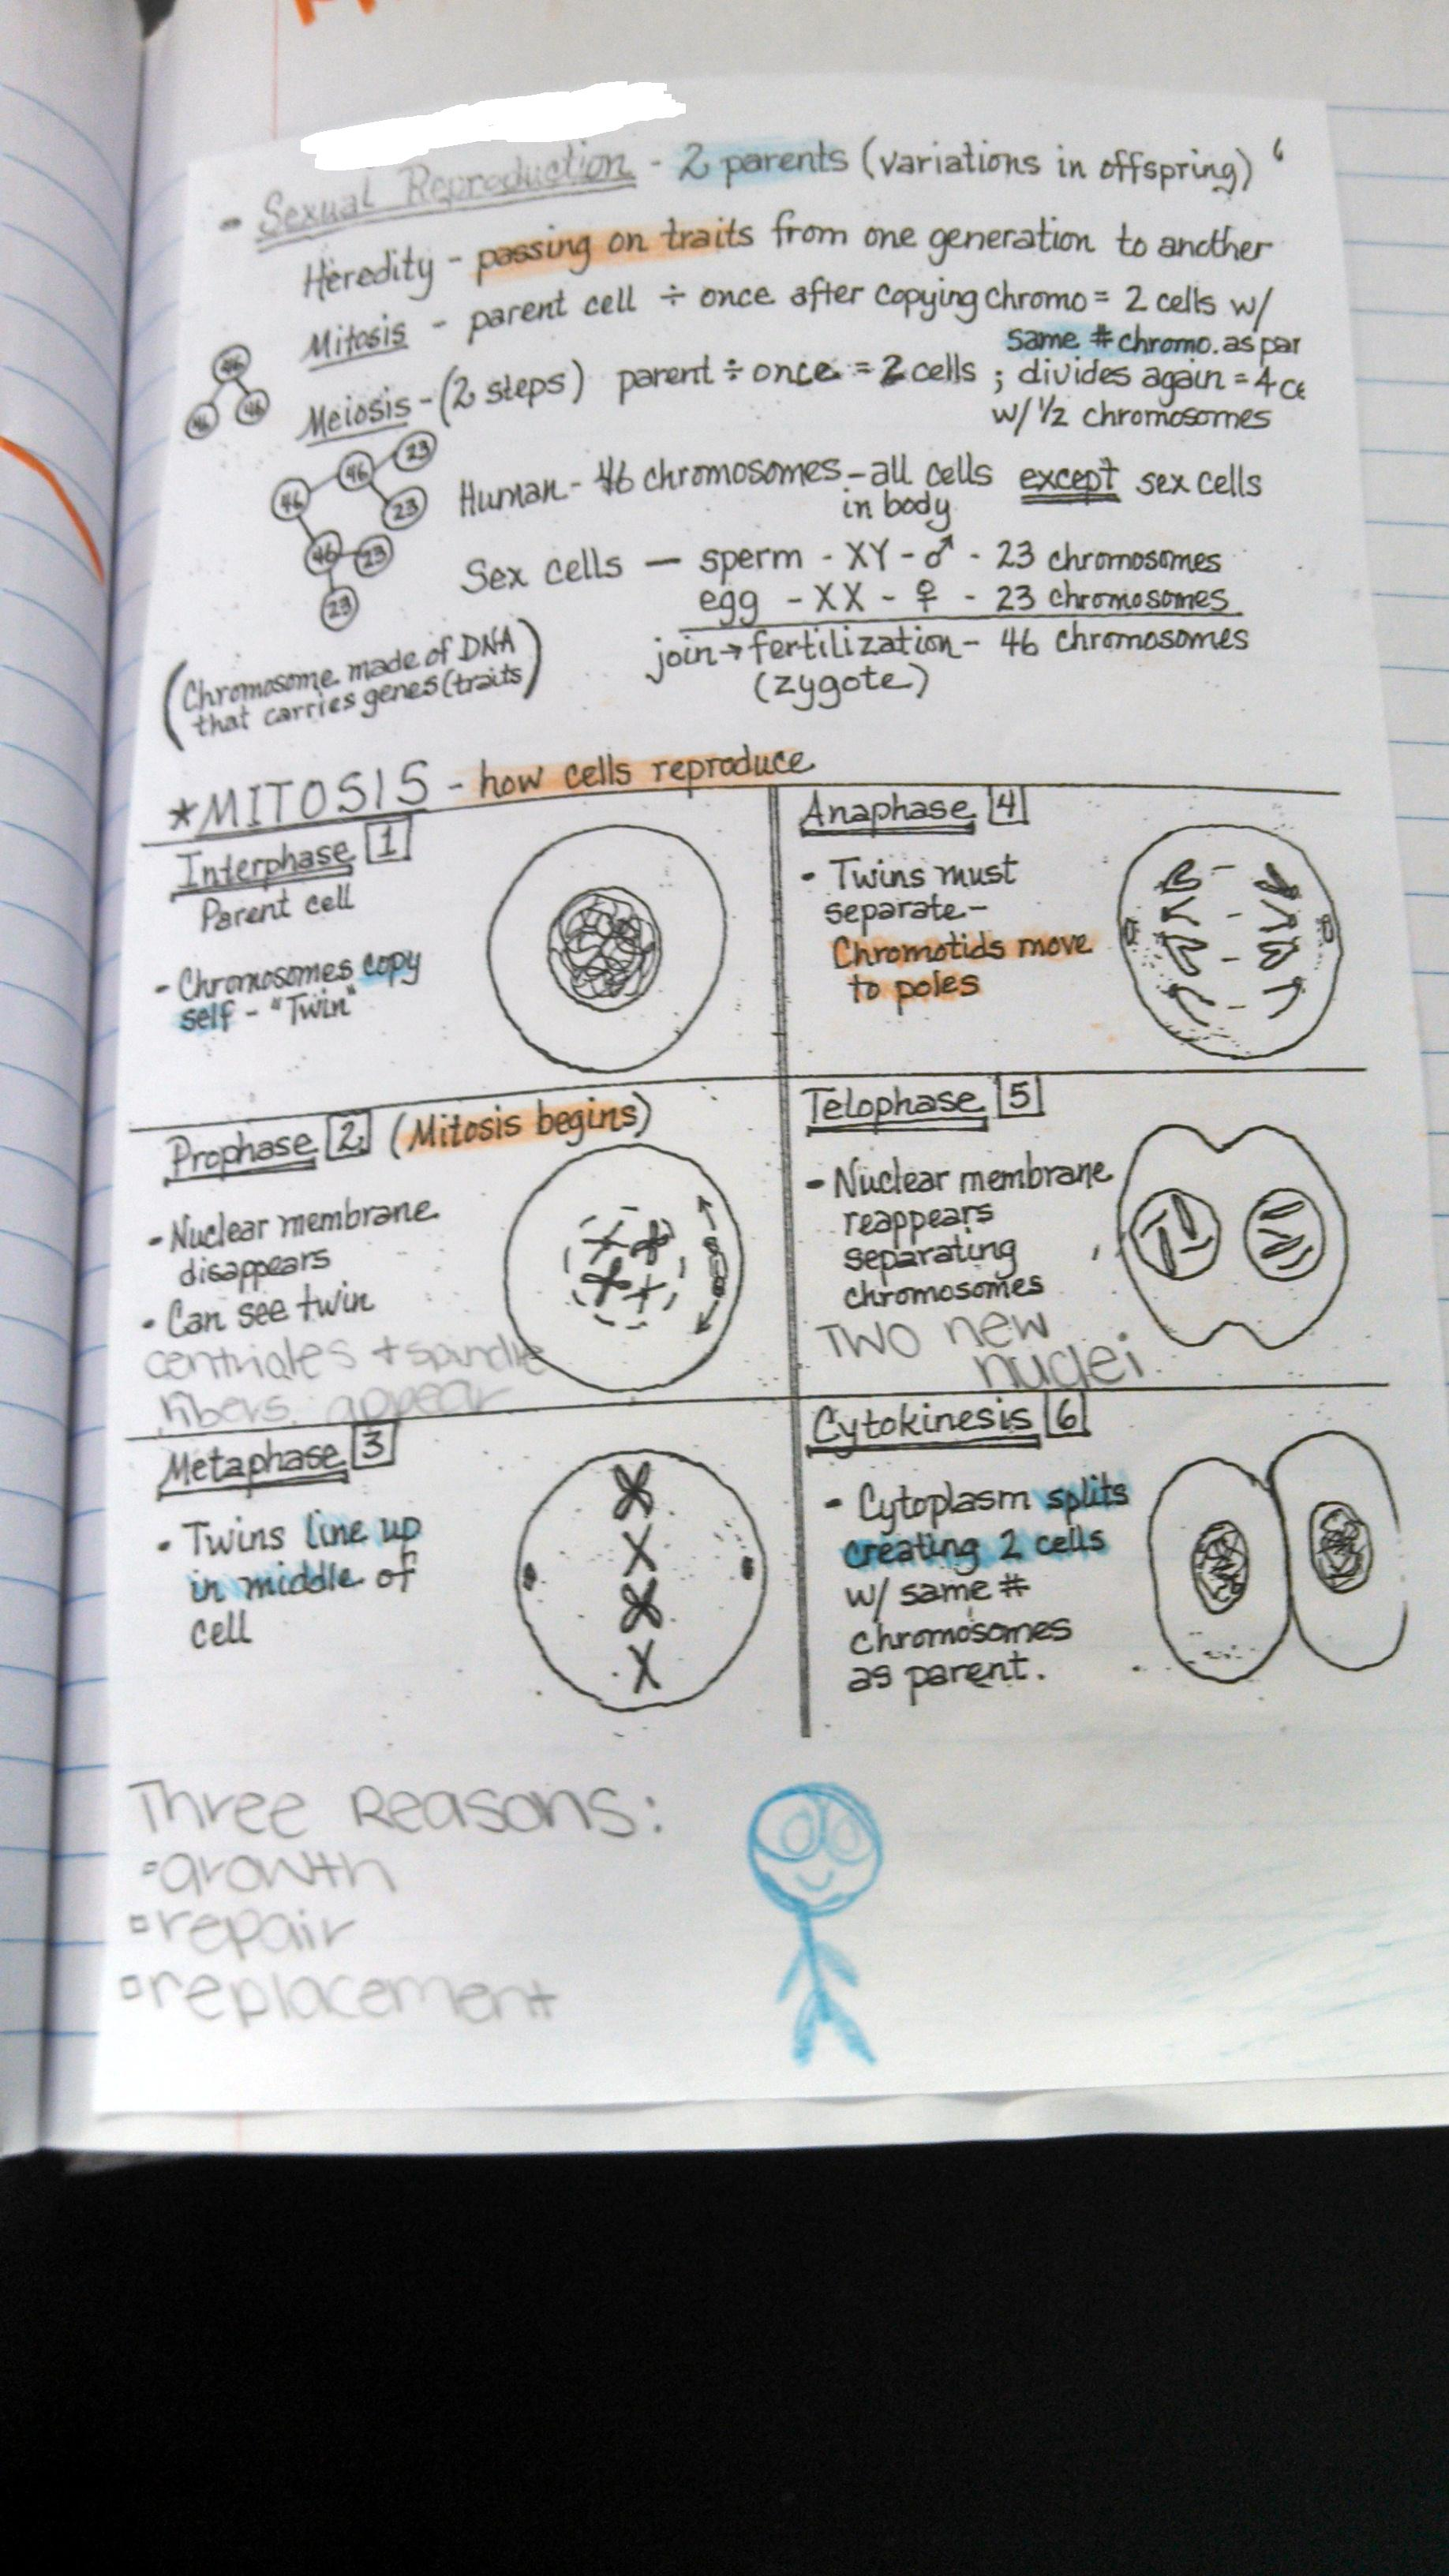 Overview Cell Reproduction Worksheet Answers